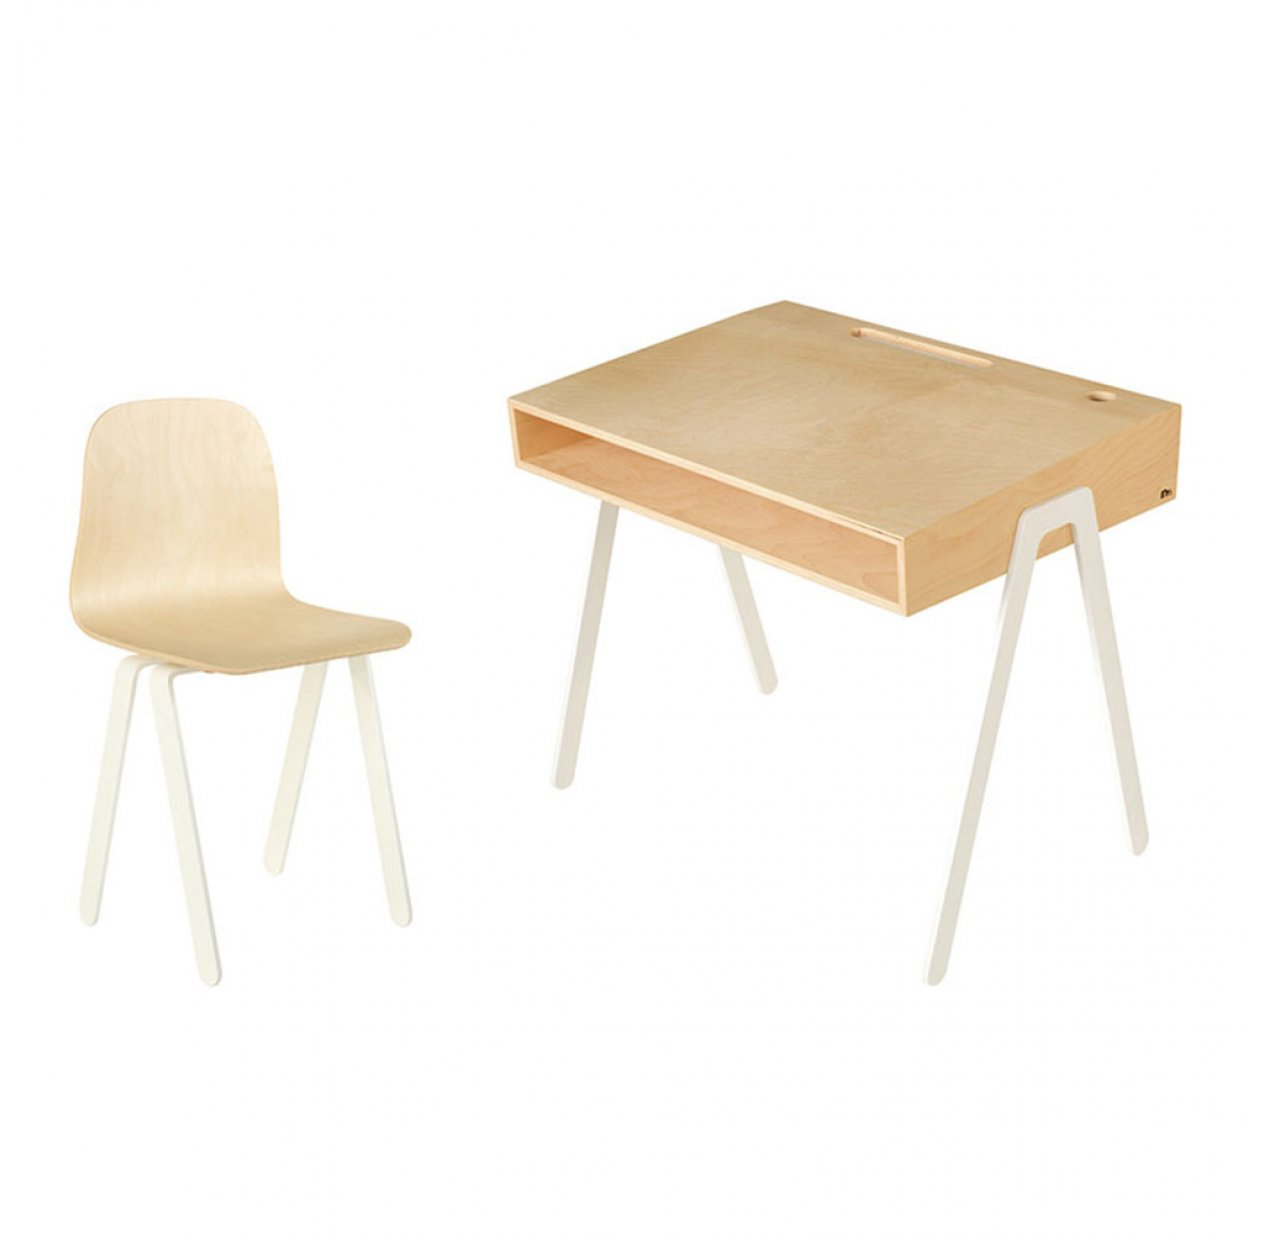 Bureau et chaise junior 7-10 ans - Blanc